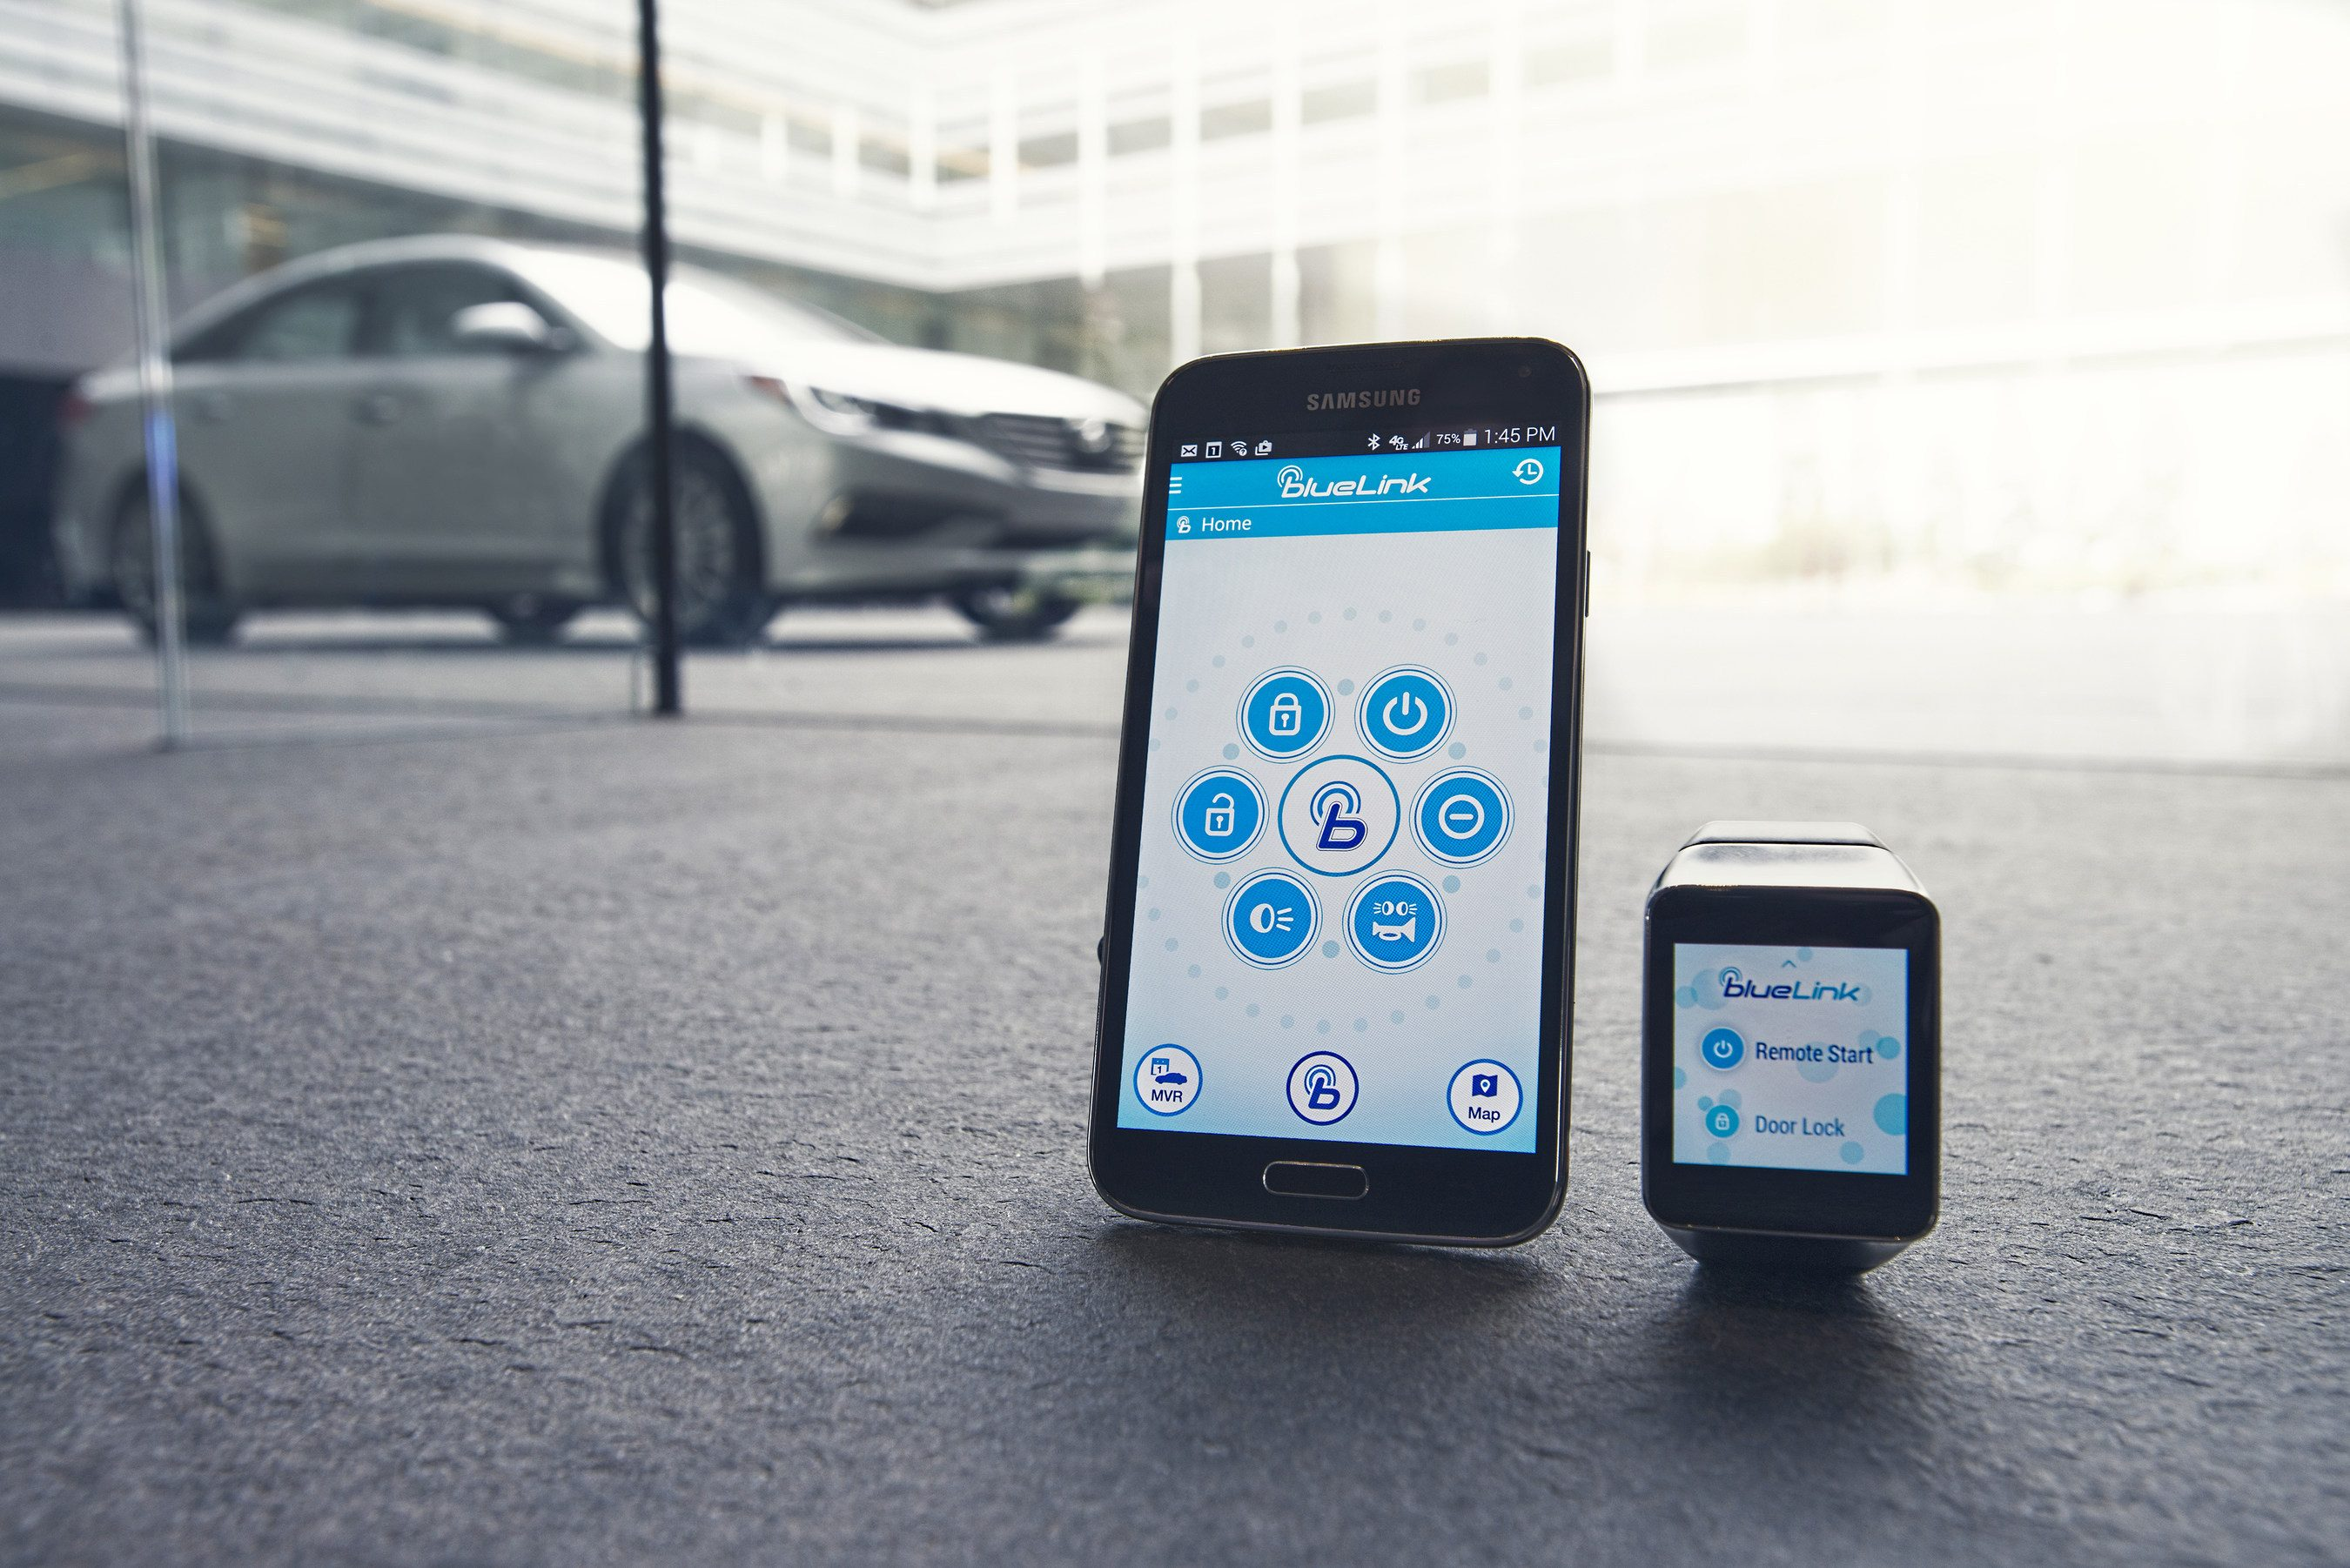 Hyundai-Blue-Link-Android-Wear-app-001.jpg